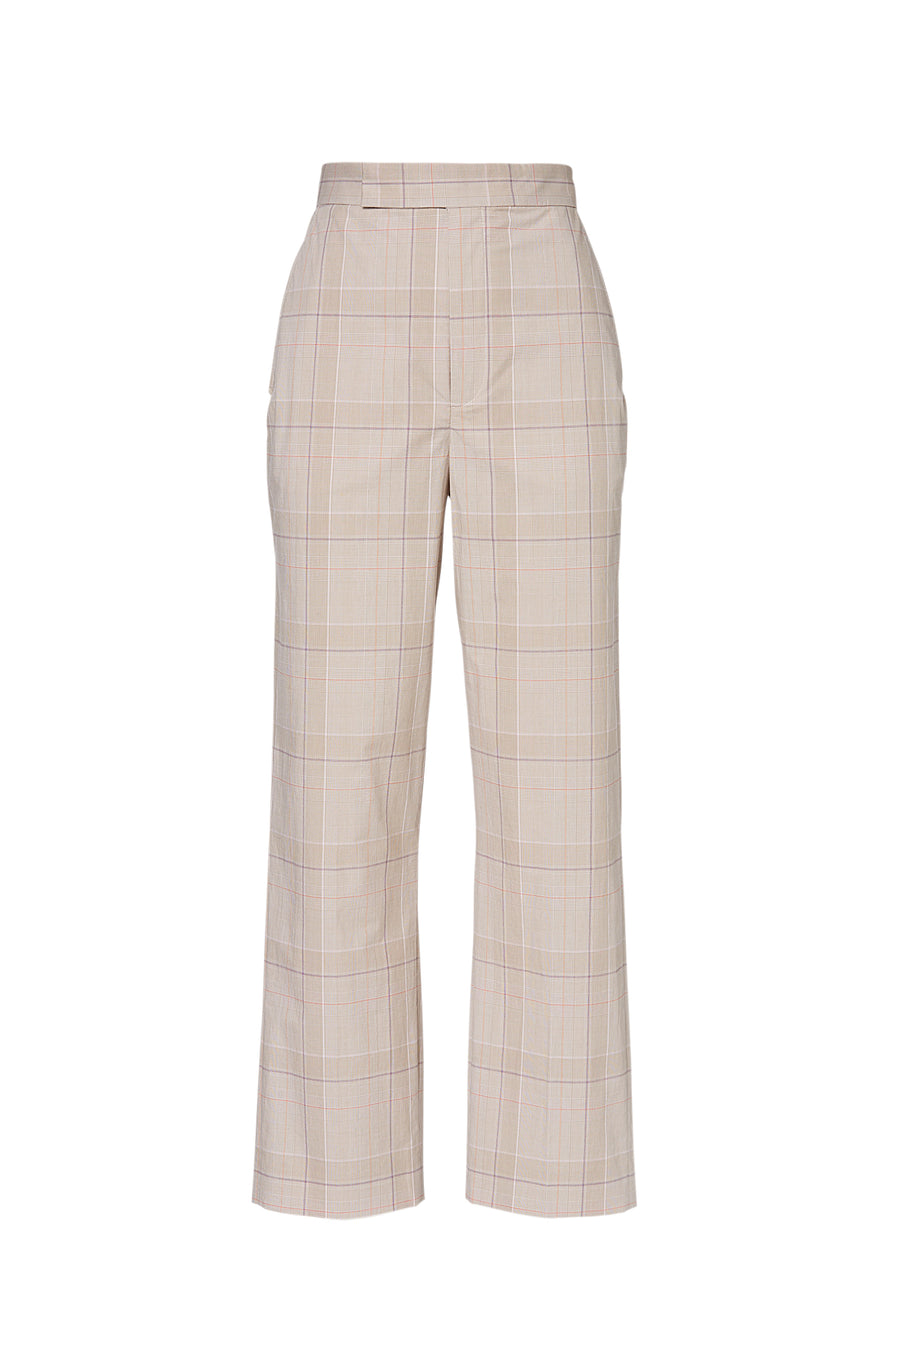 CHECK SLIM FIT TROUSER